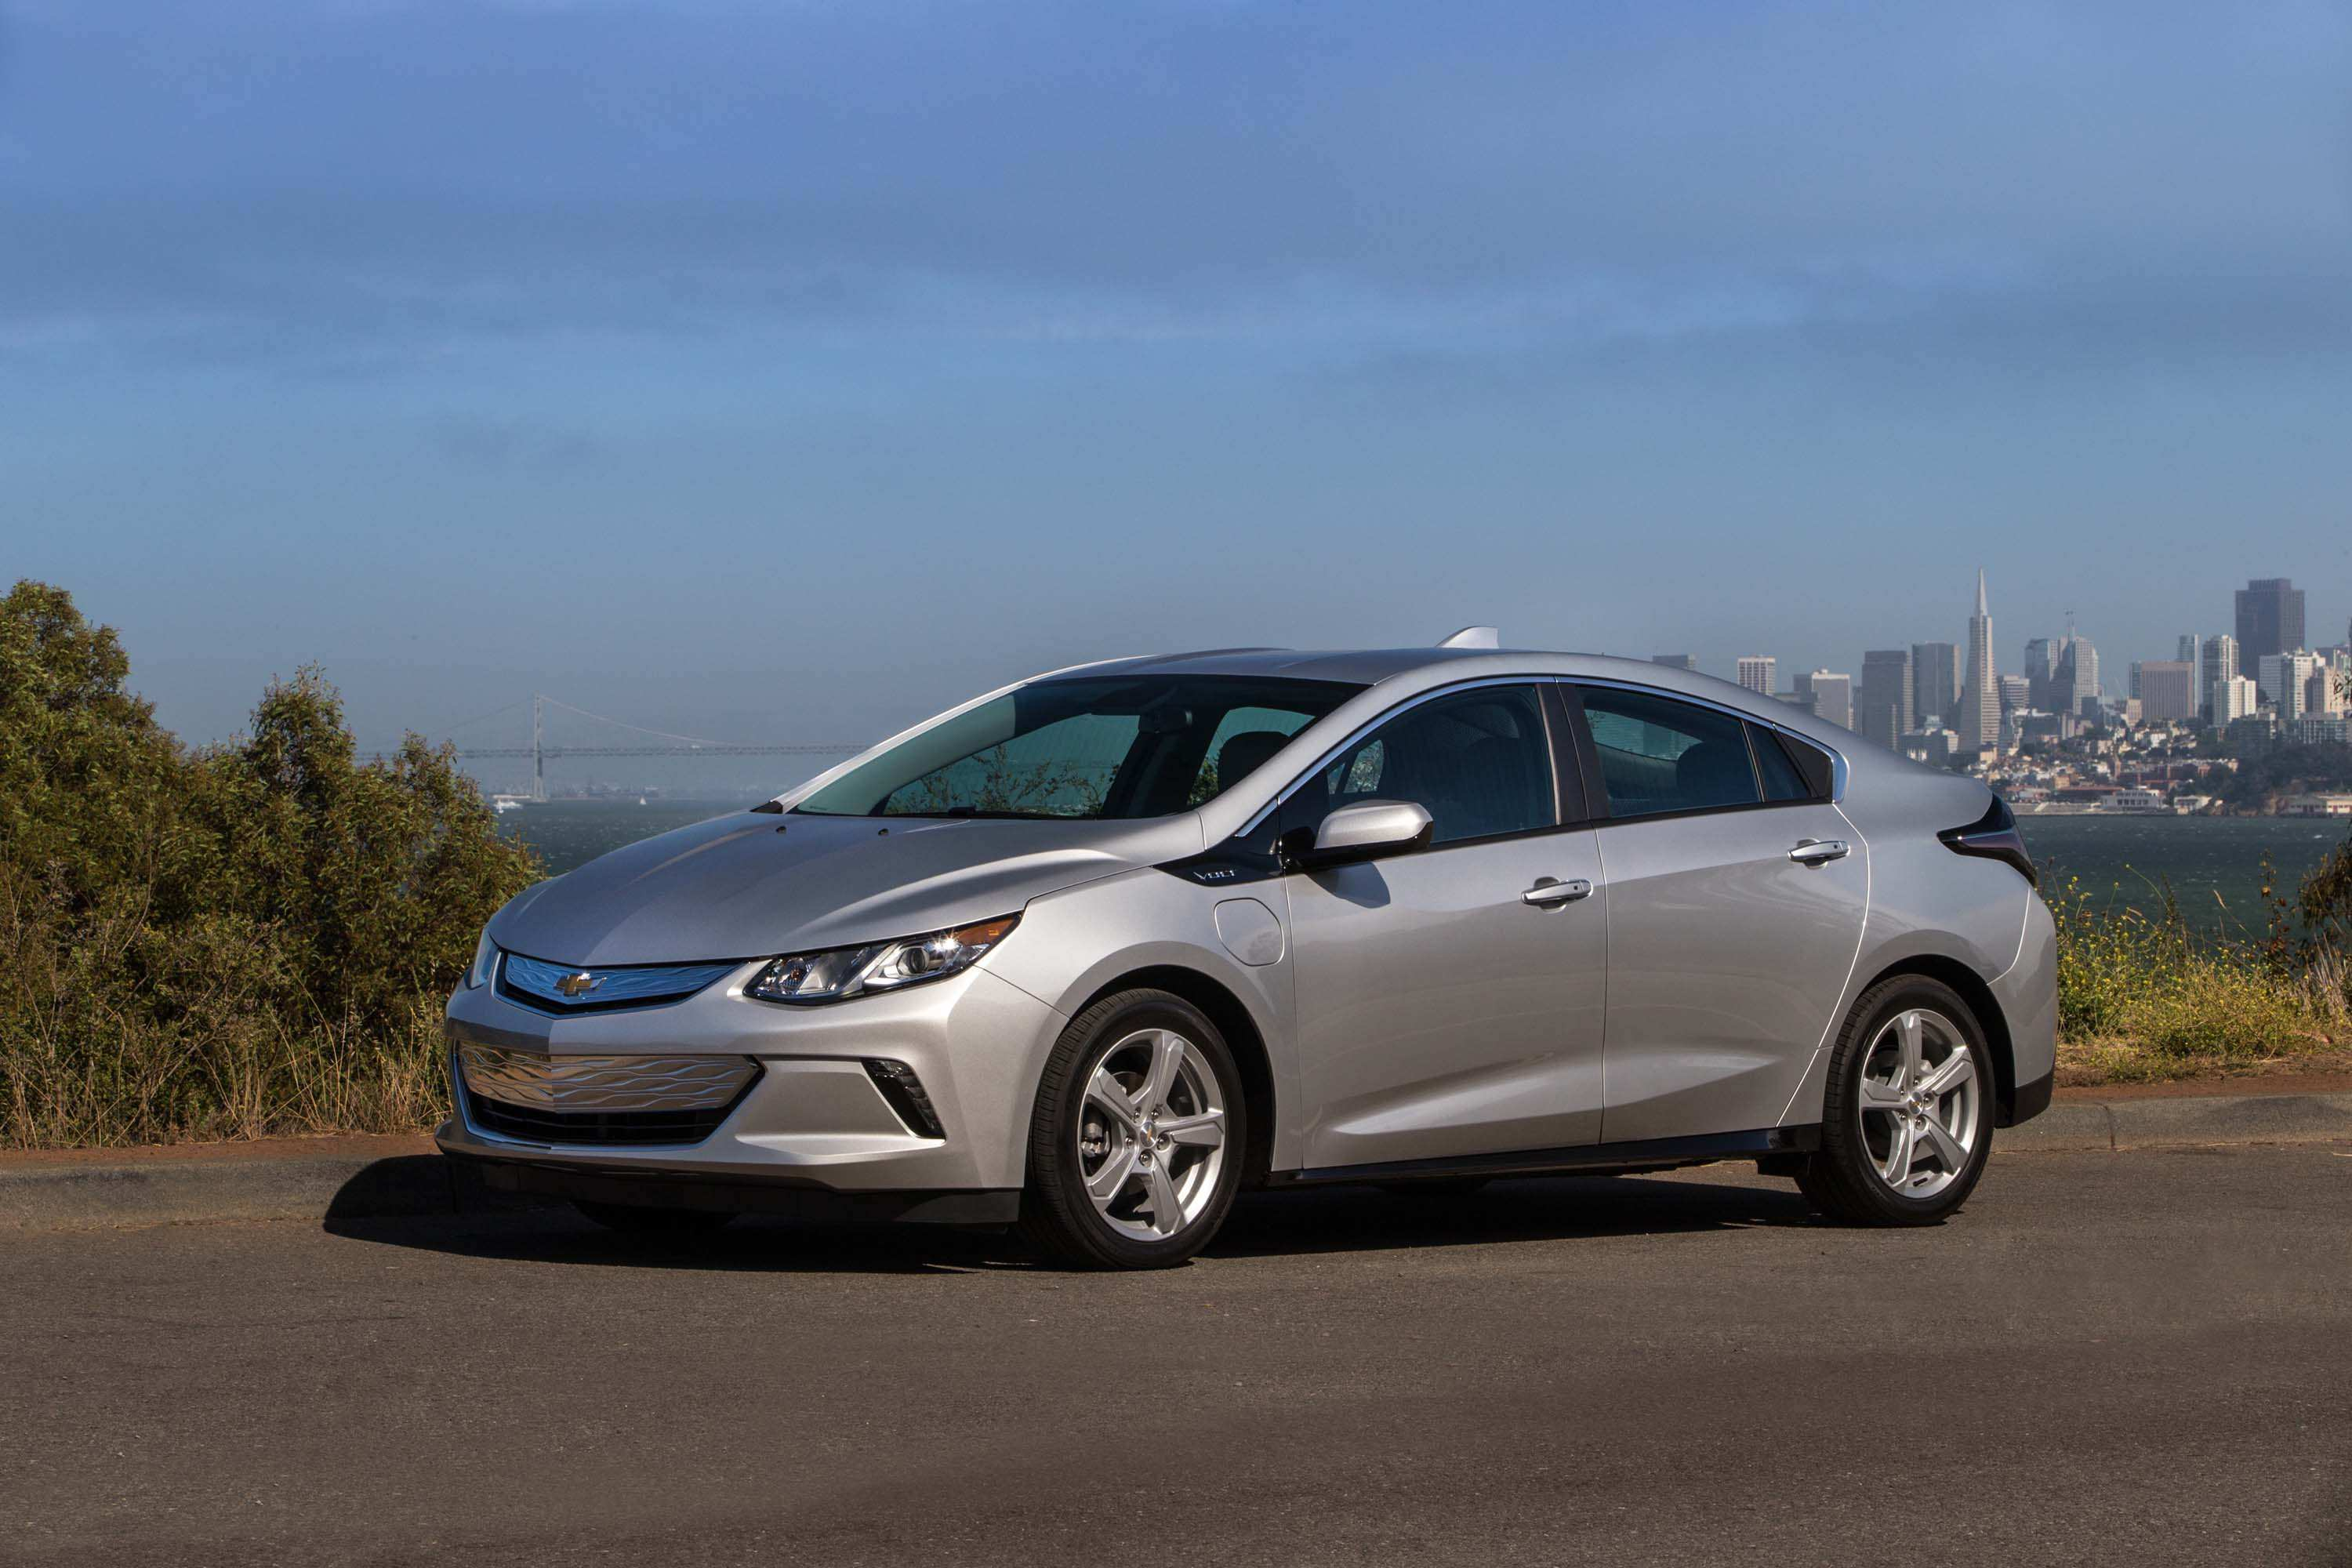 68 The Best 2019 Chevrolet Volt Spesification